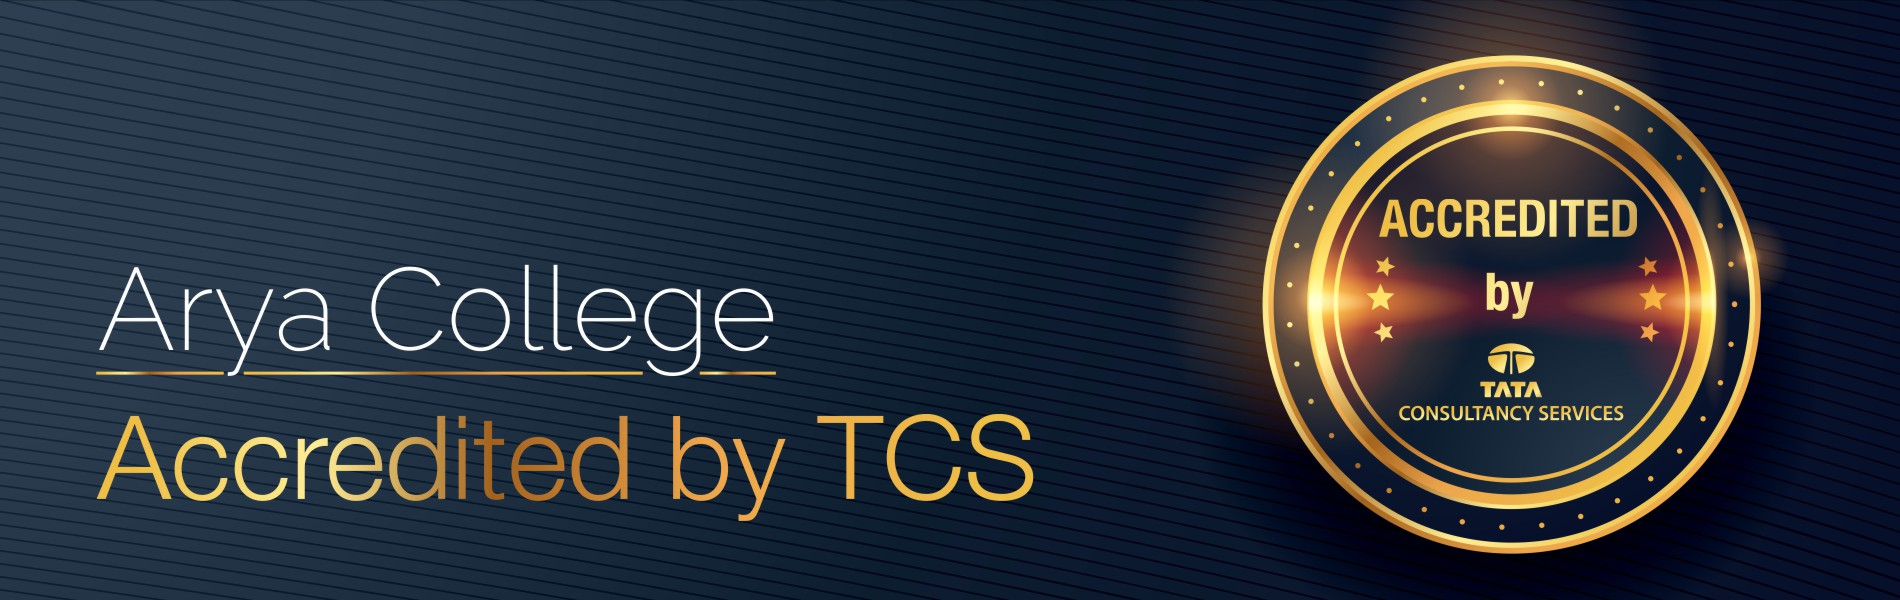 Arya-College-Accredited-by-TCS